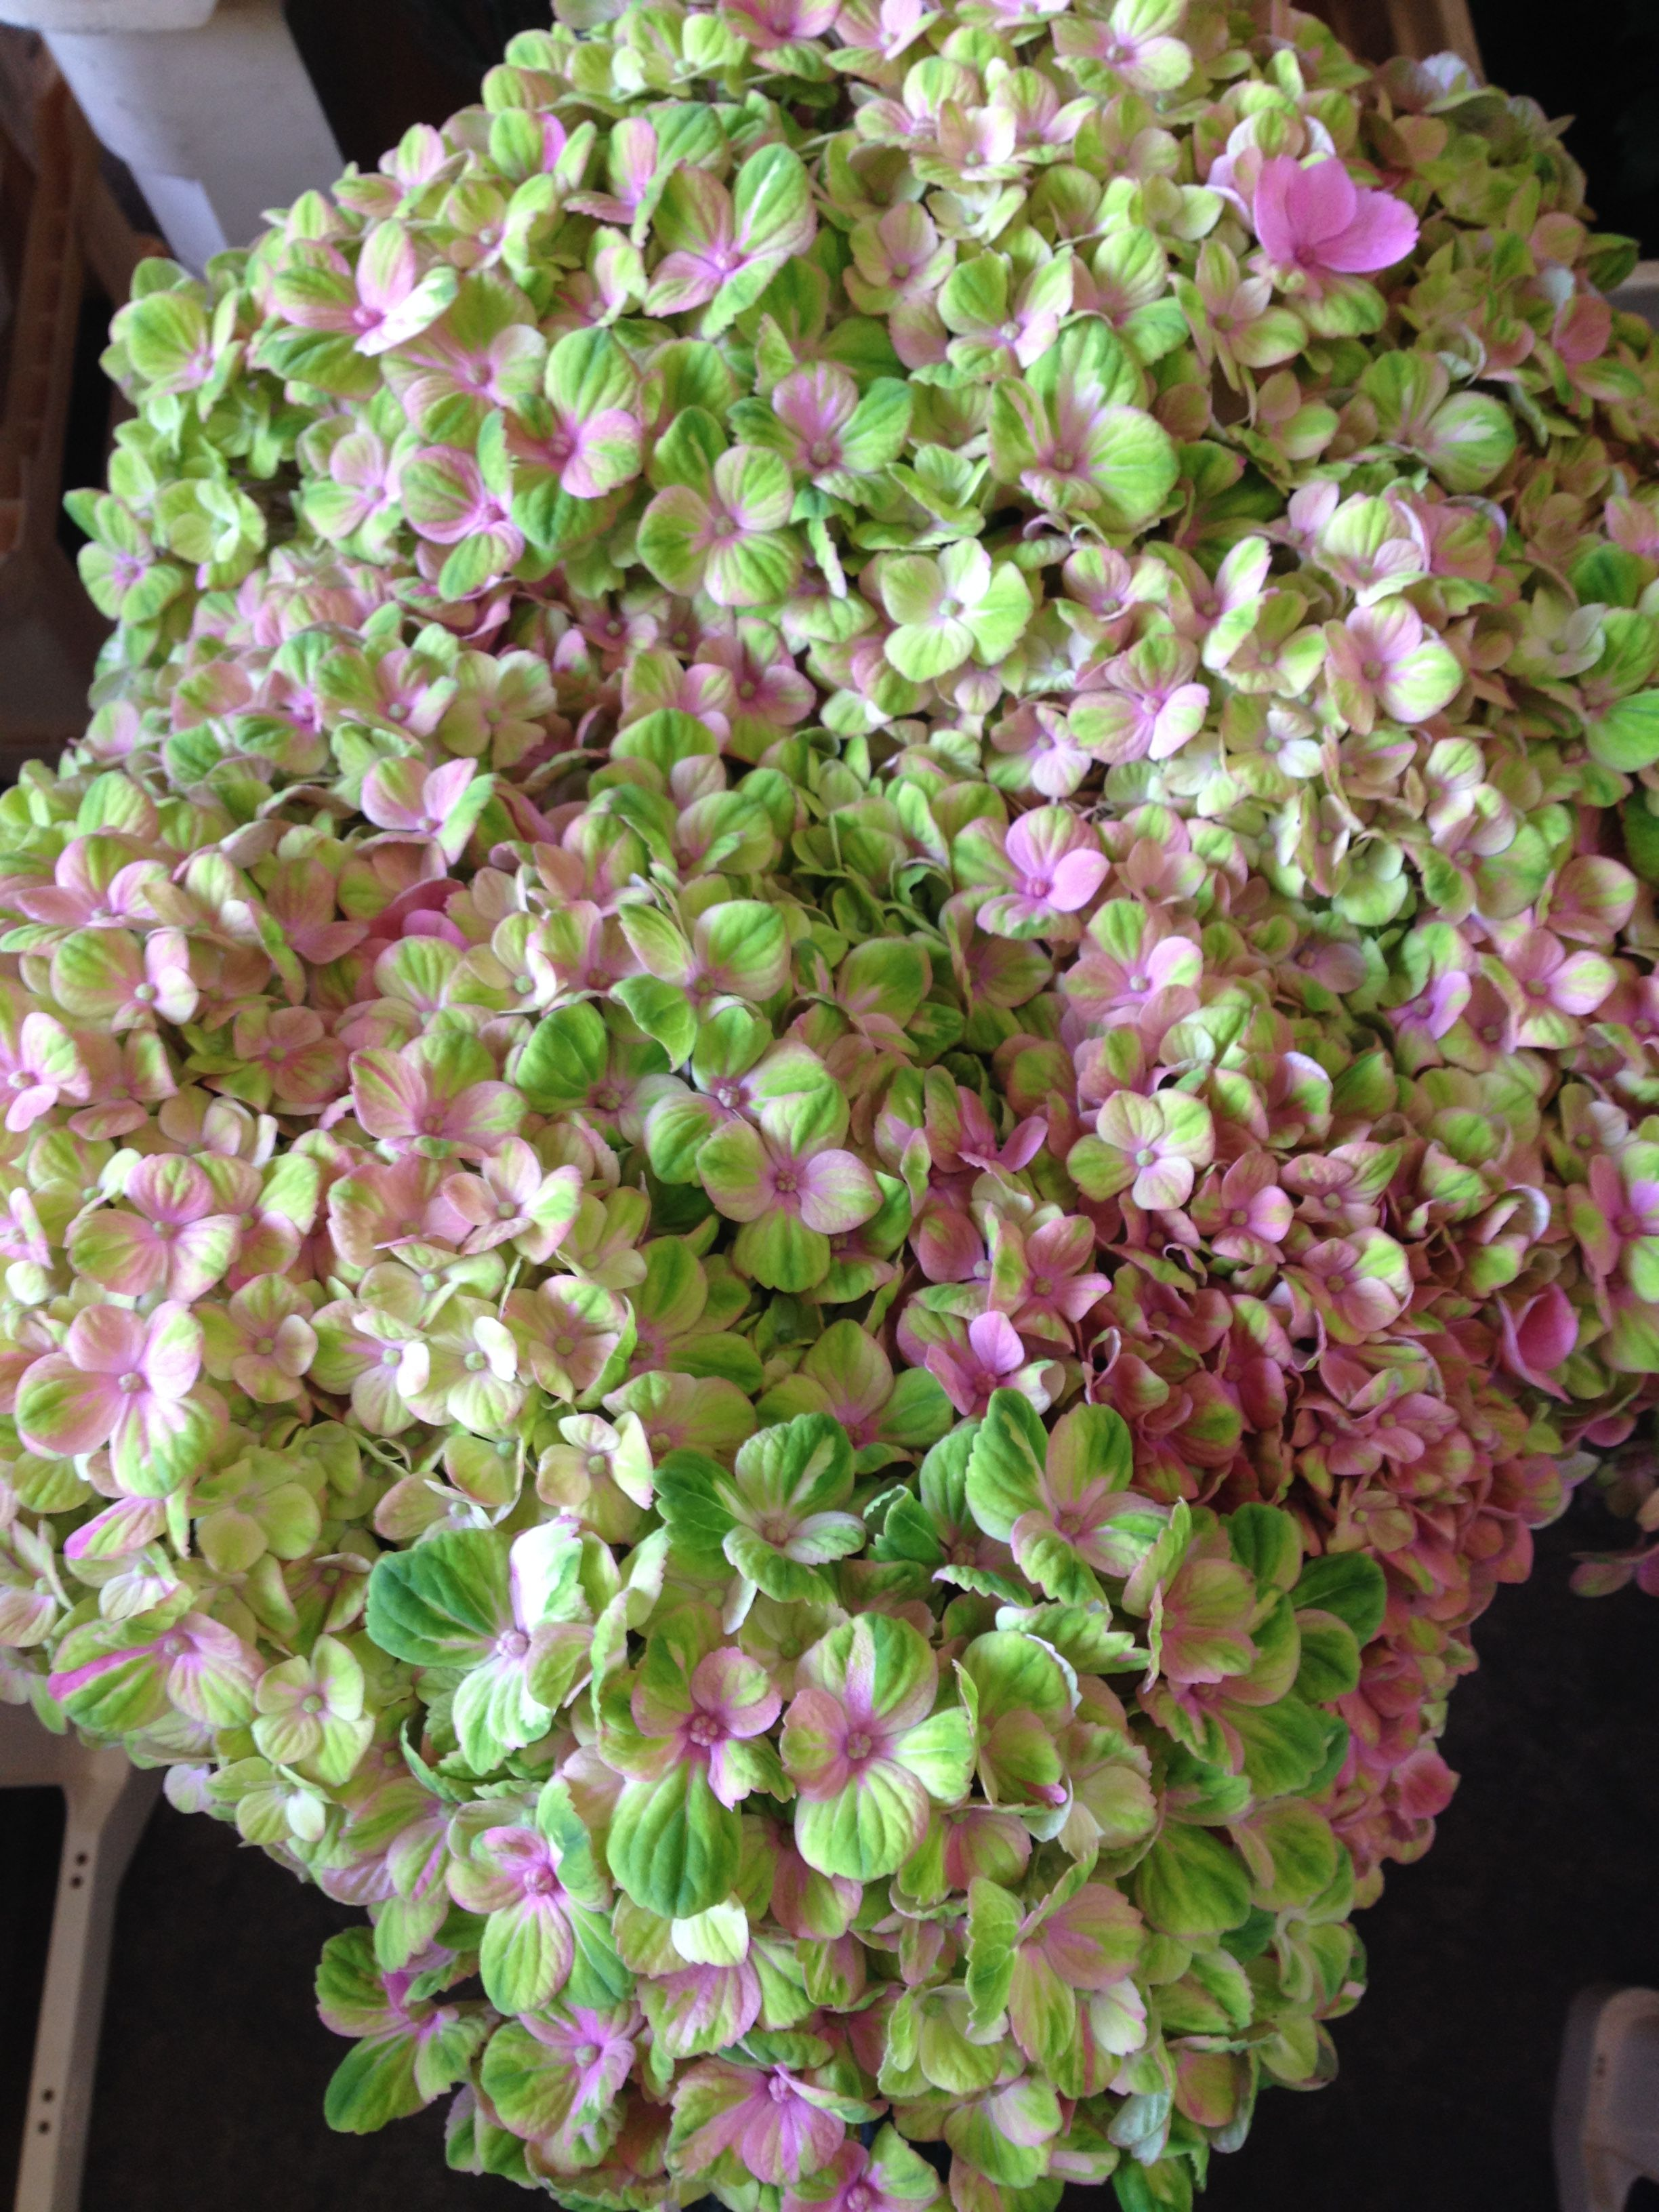 Hyrangea magical coral sold in bunches of 10 stems from